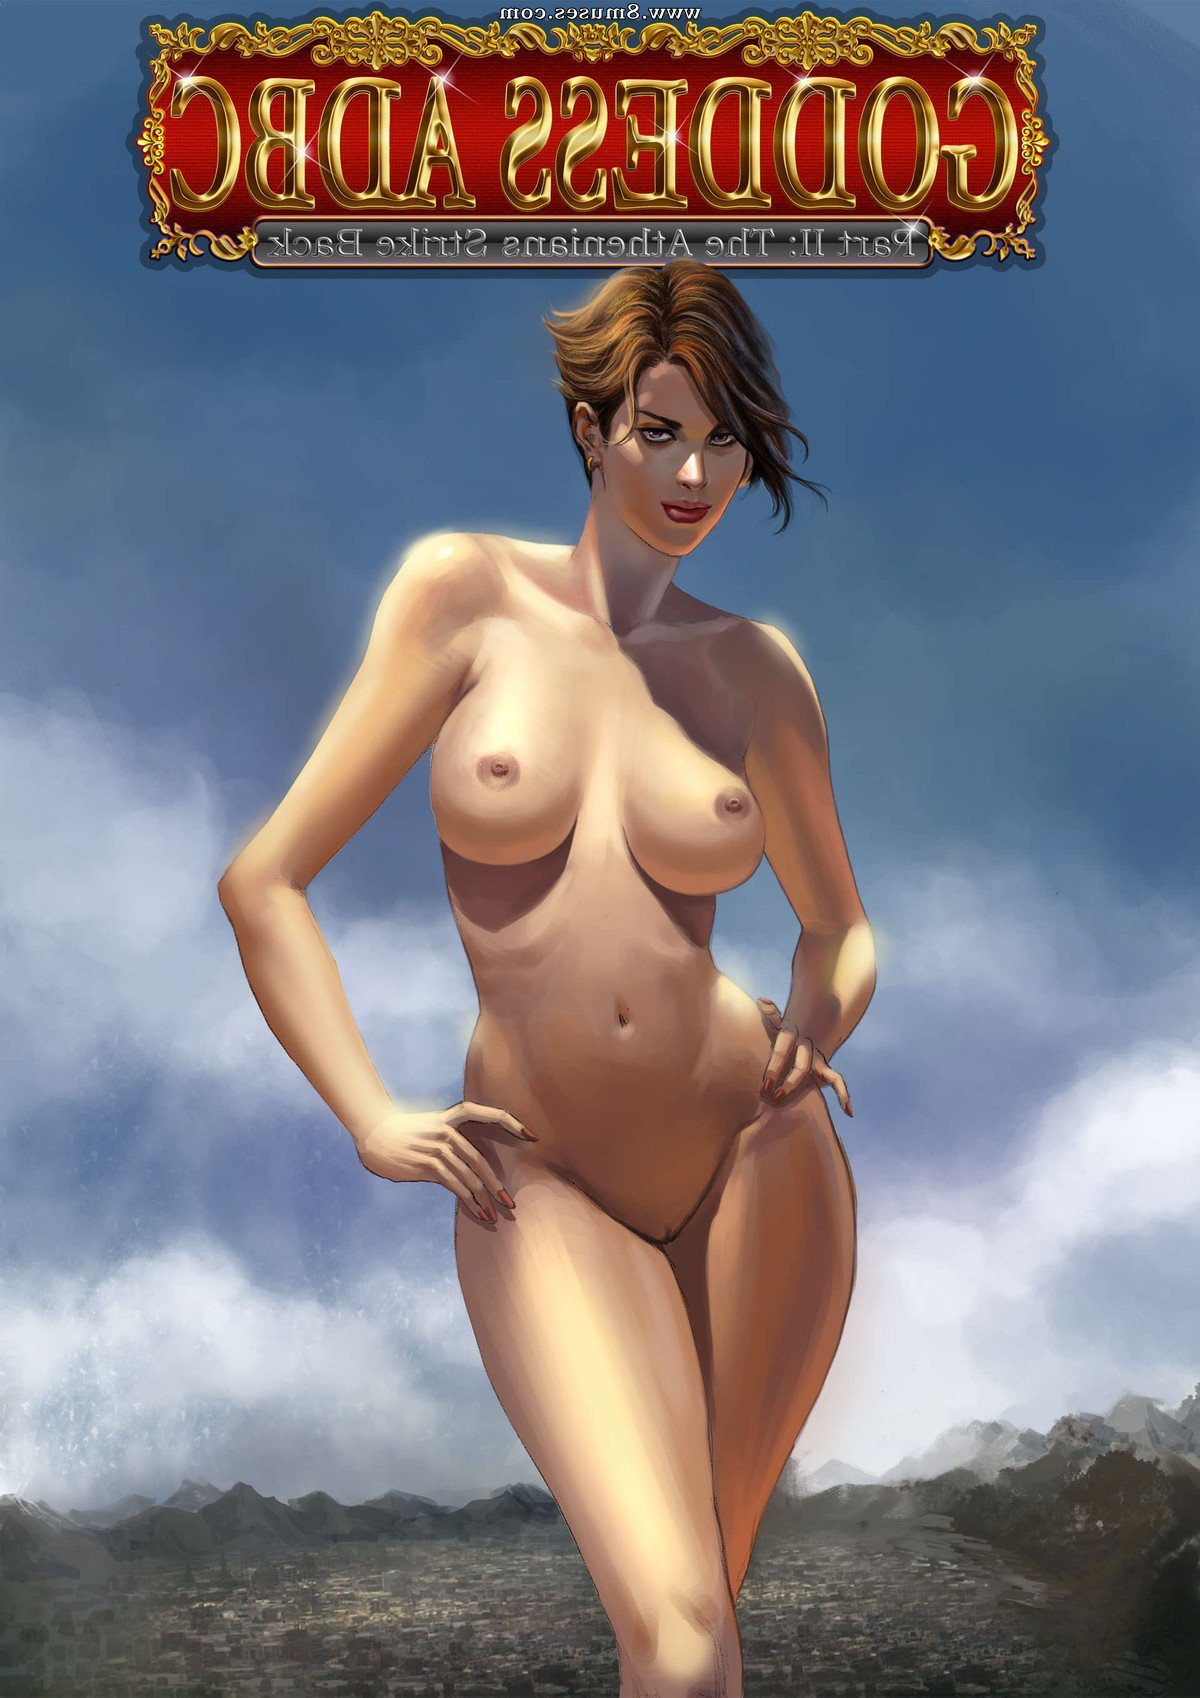 Giantess-Fan-Comics/Goddess-ADBC/Issue-2 Goddess_ADBC_-_Issue_2.jpg